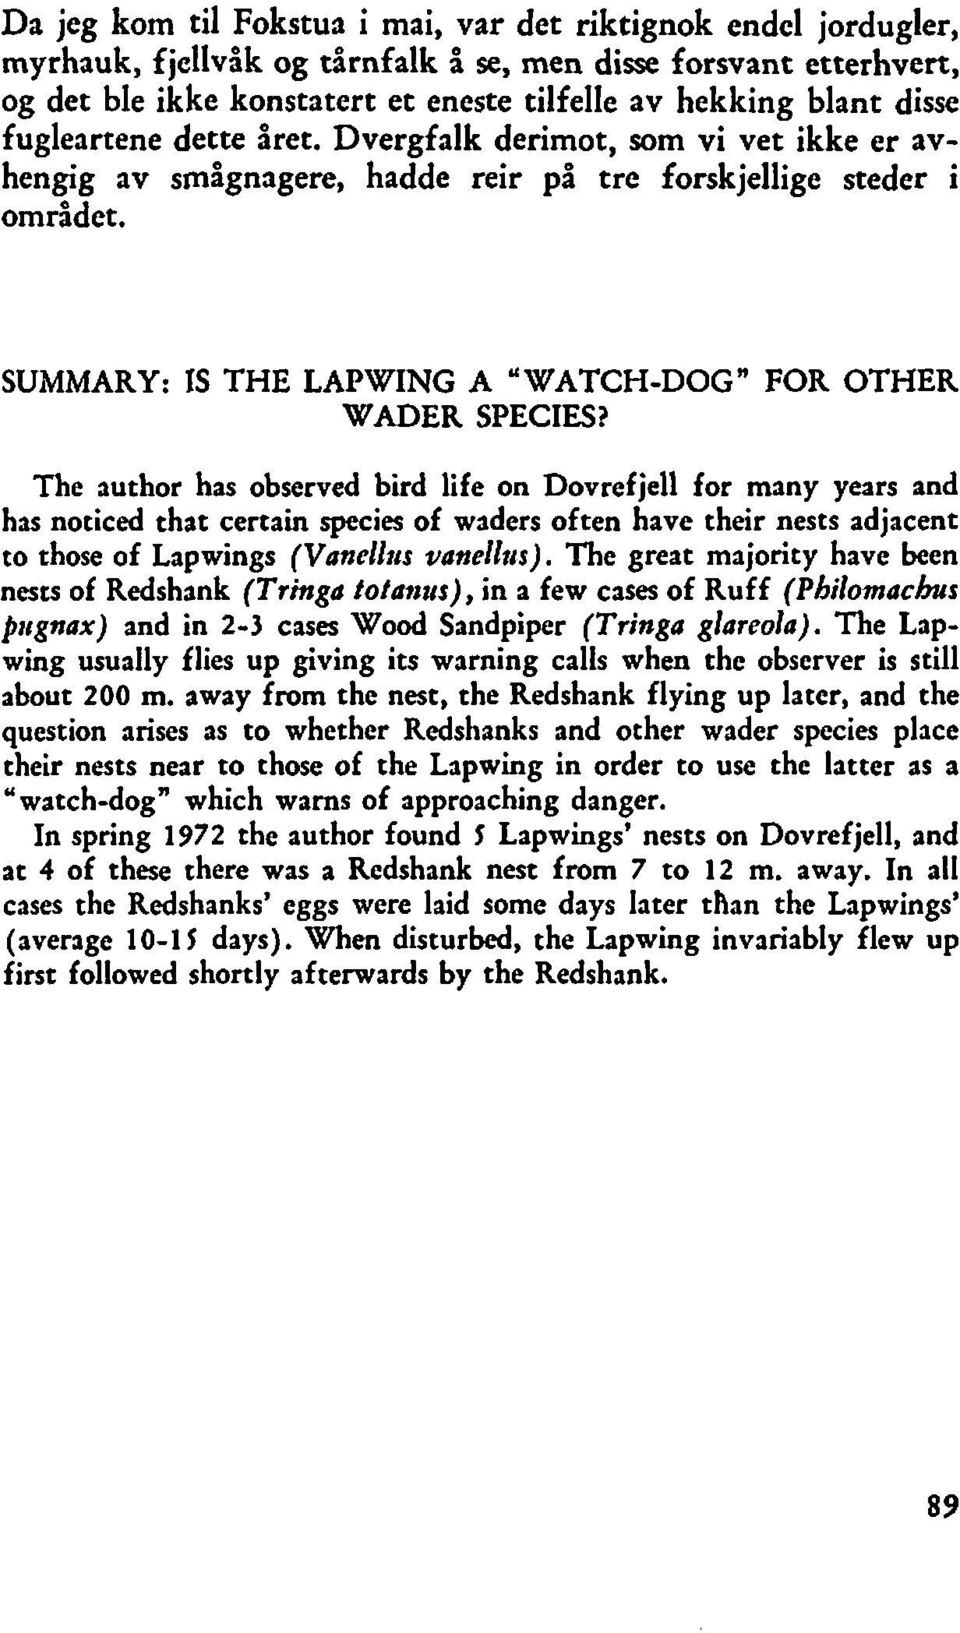 "SUMMARY: IS THE LAPWING A 'WATCH-DOG"" FOR OTHER WADER SPECIES?"